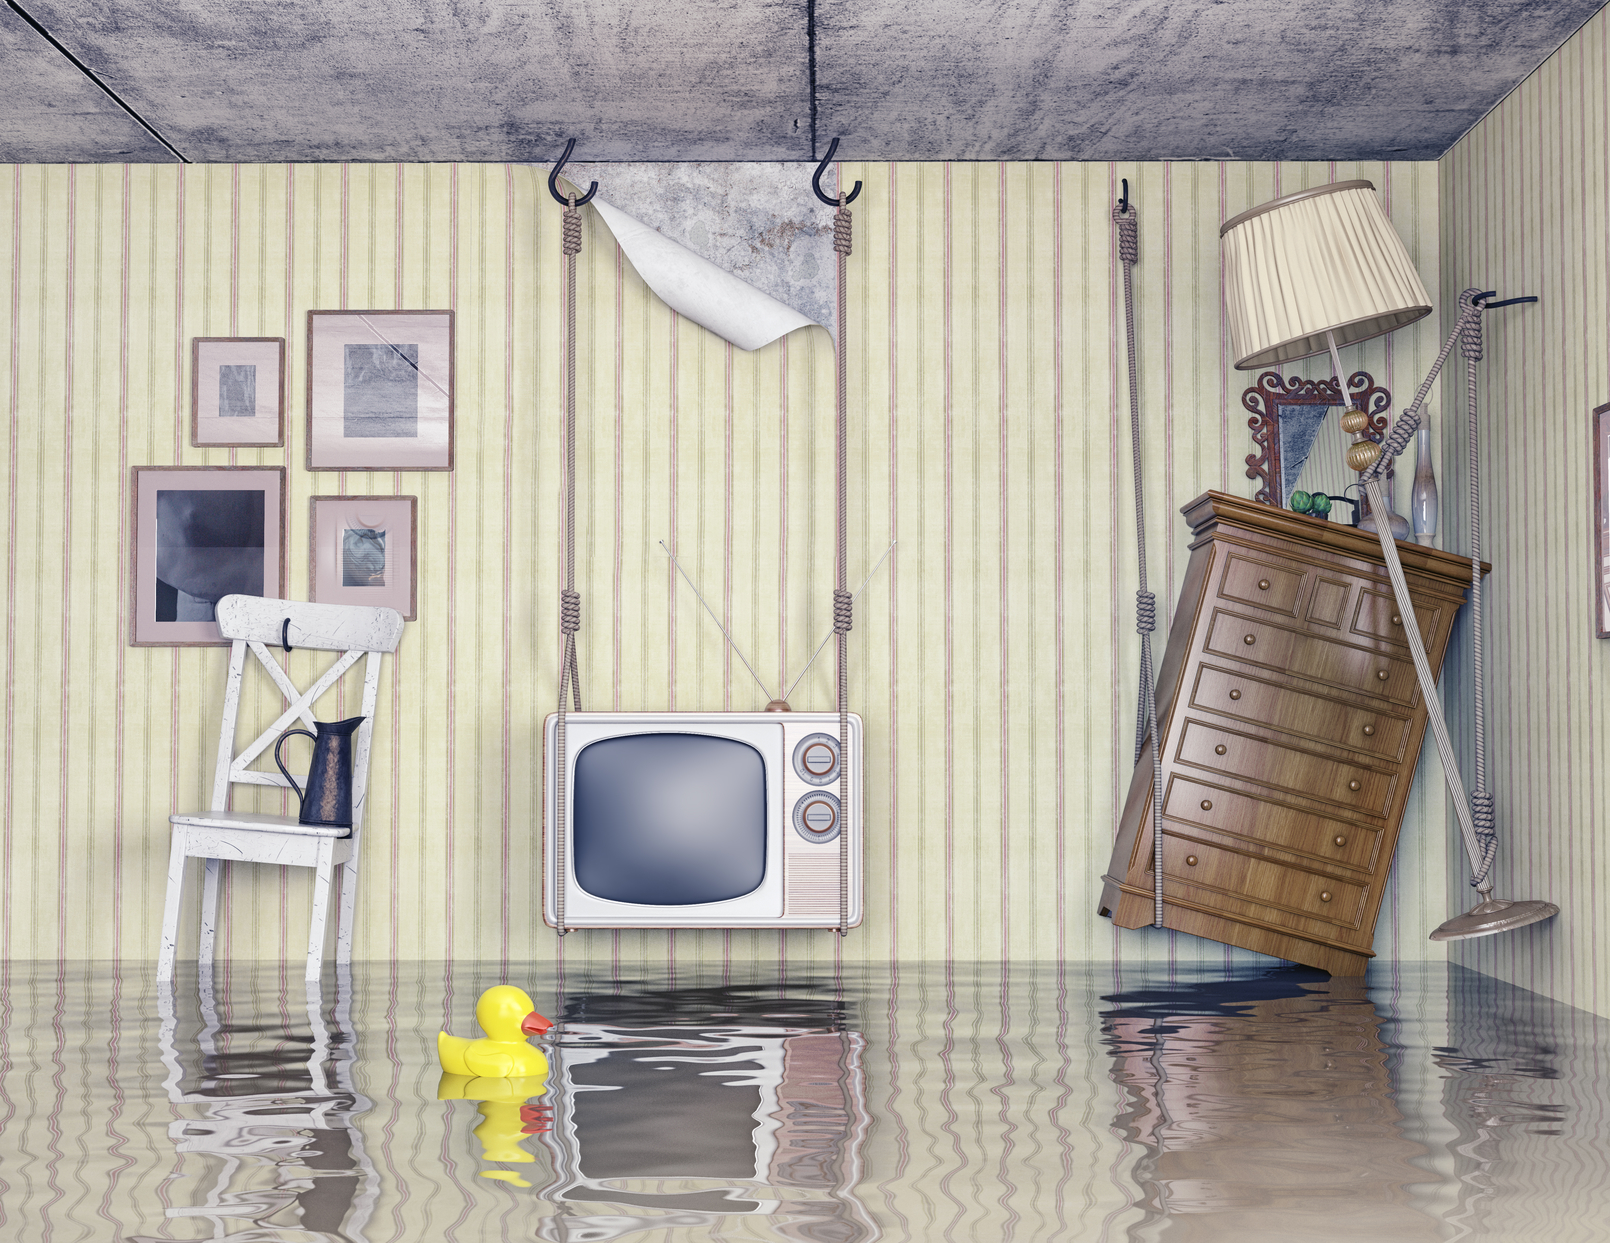 water damage cleanup new haven, water damage new haven, water damage restoration new haven